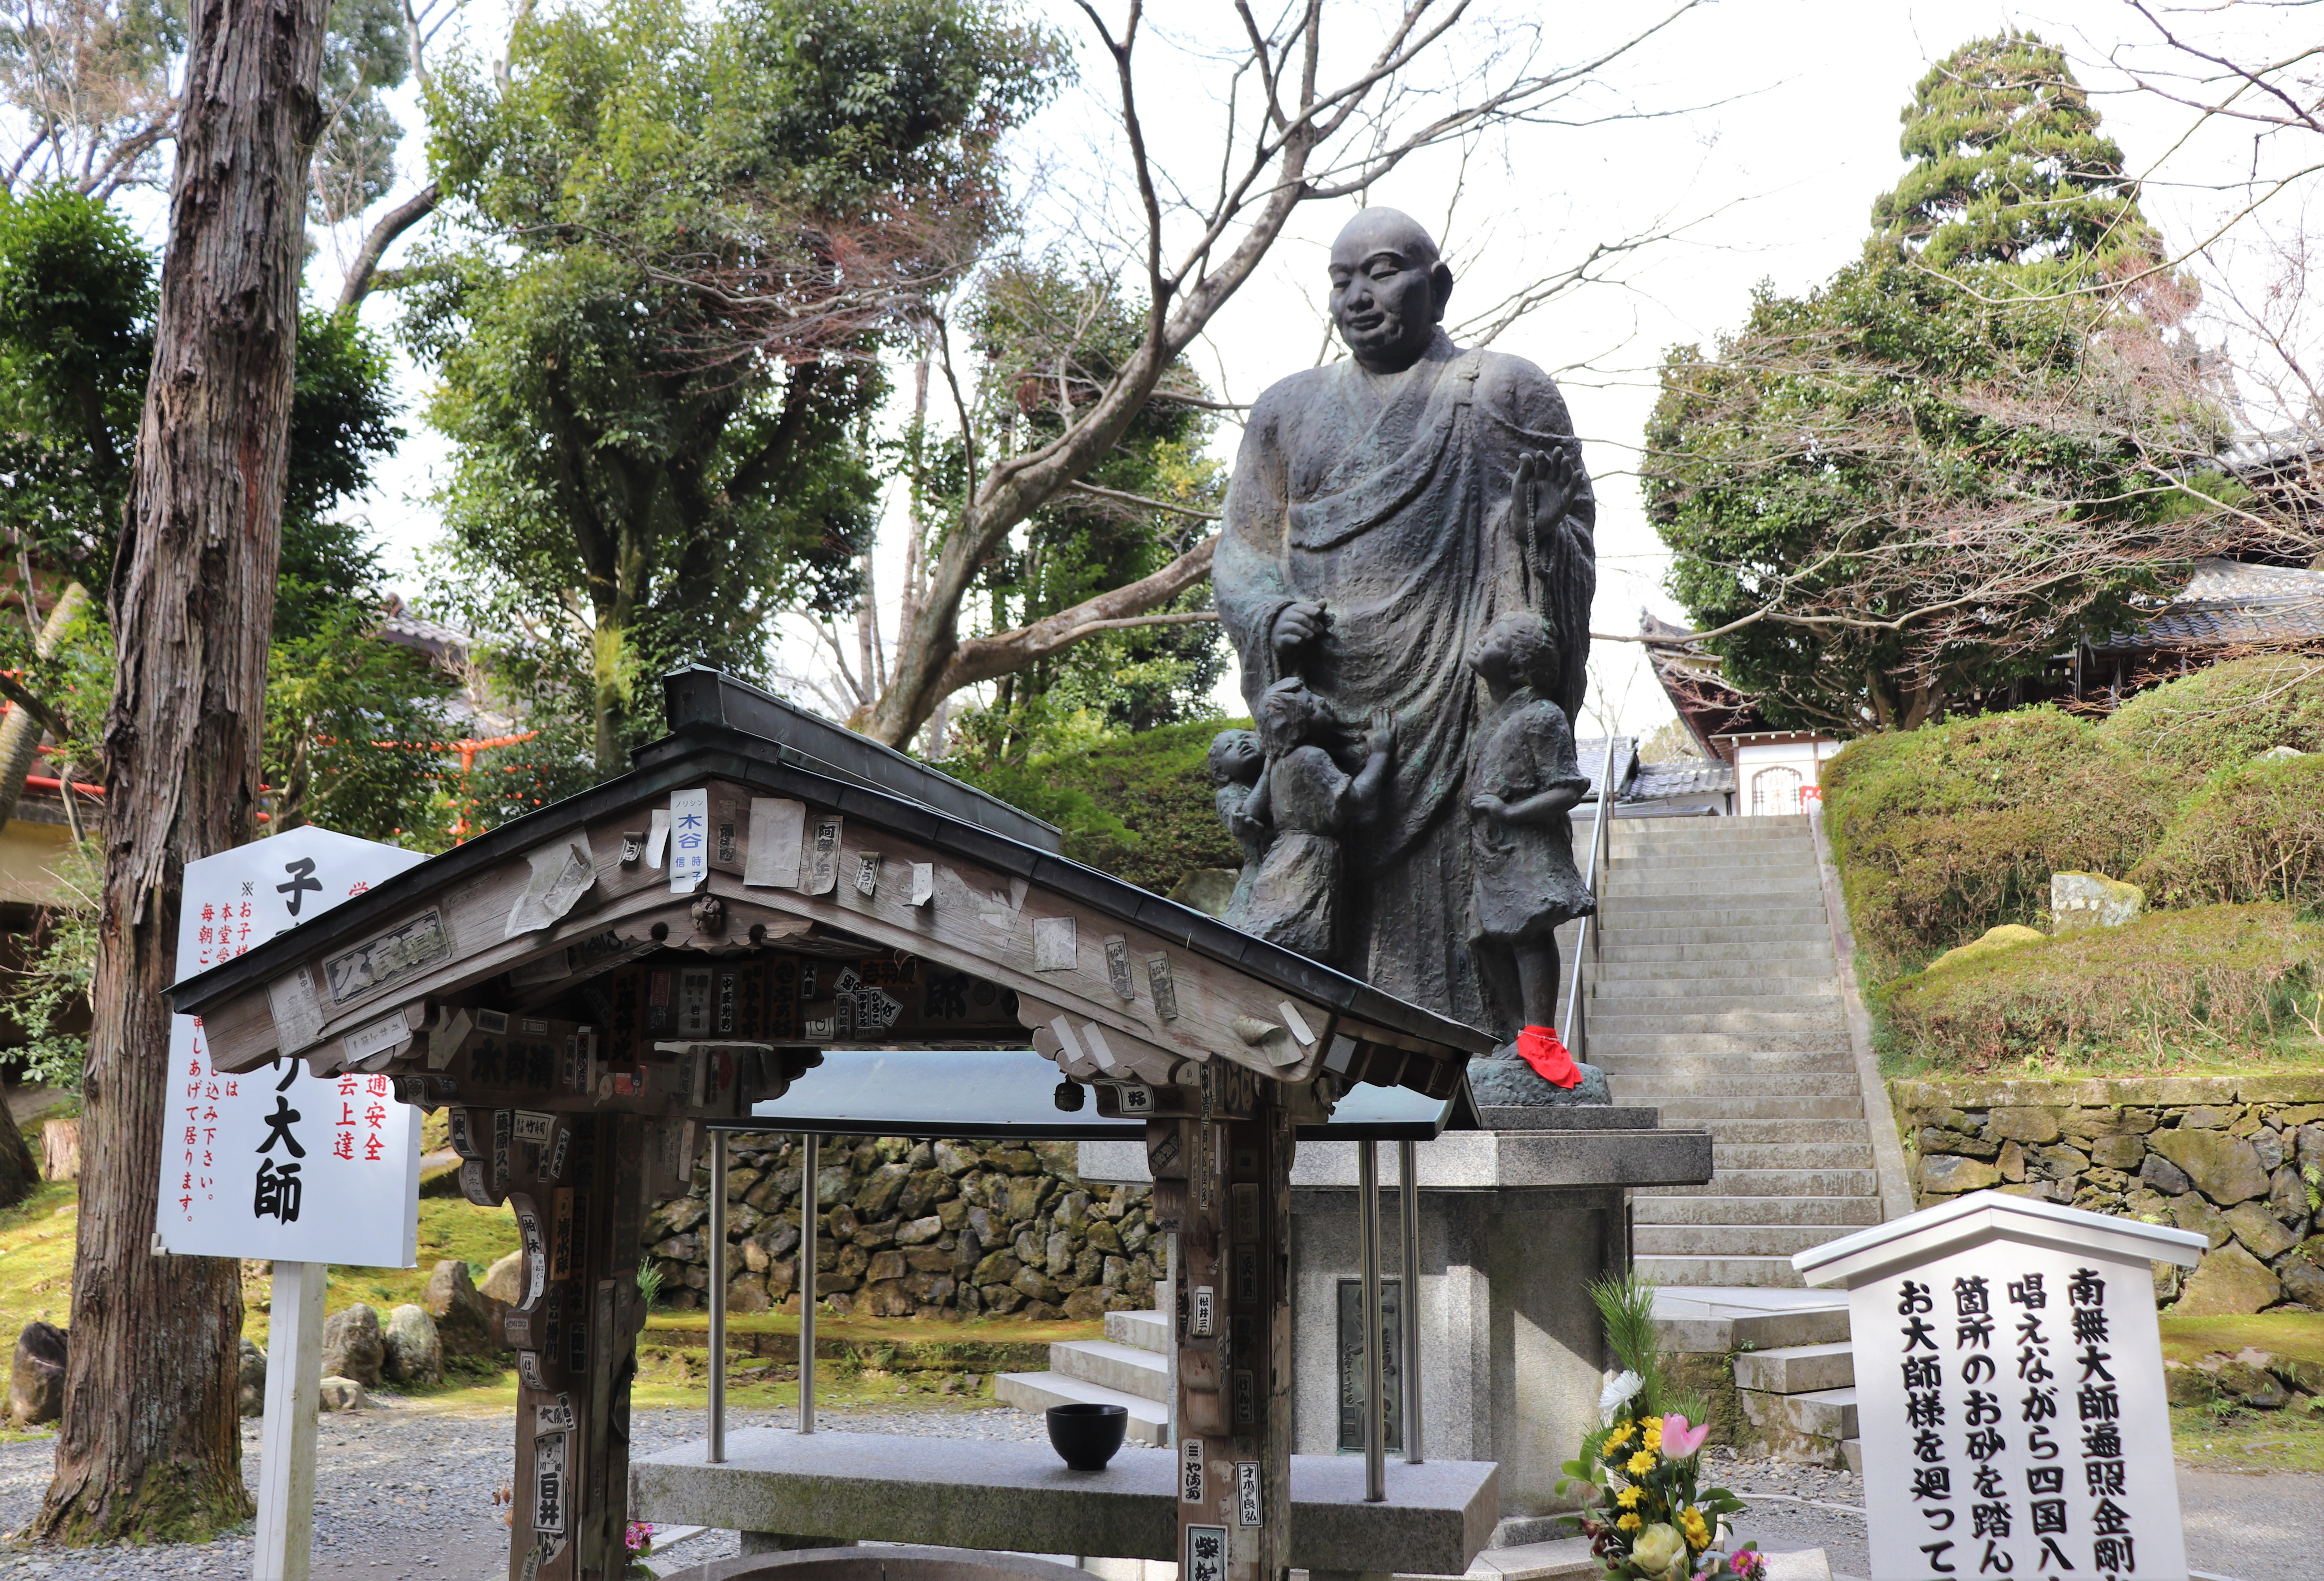 Statue of Kukai protecting children, at Imakumano Kannon-ji Temple